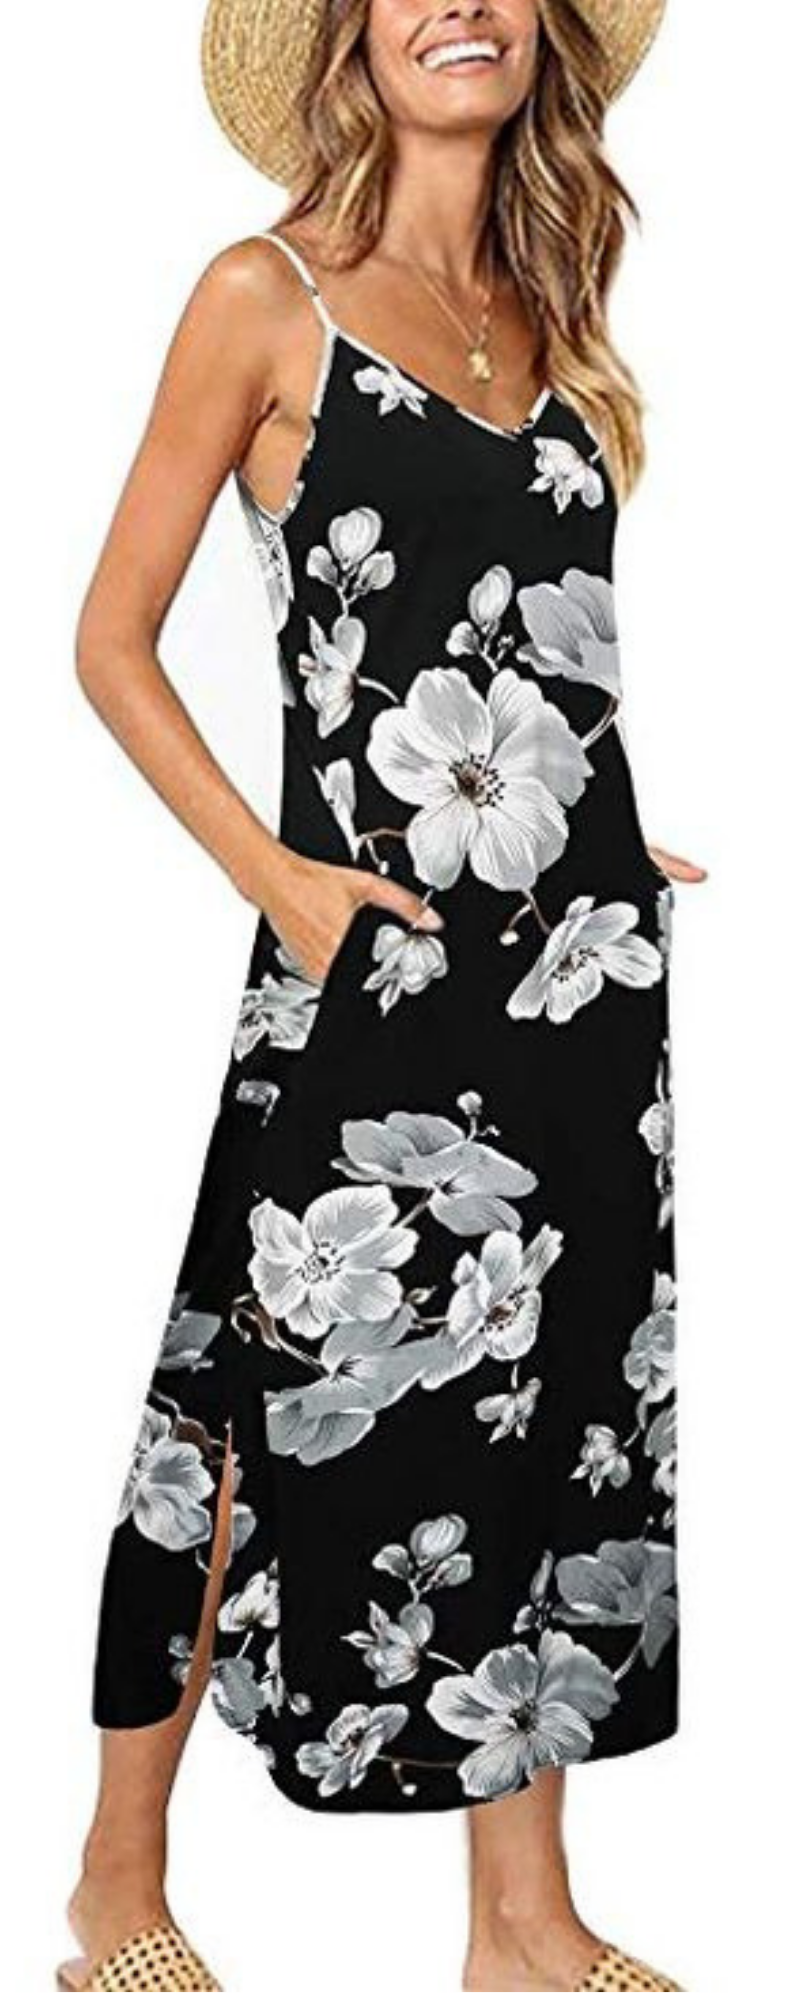 29697ad28 Women 3/4 Sleeve Striped Floral Print Tie Waist Party Maxi Dress with  Pockets